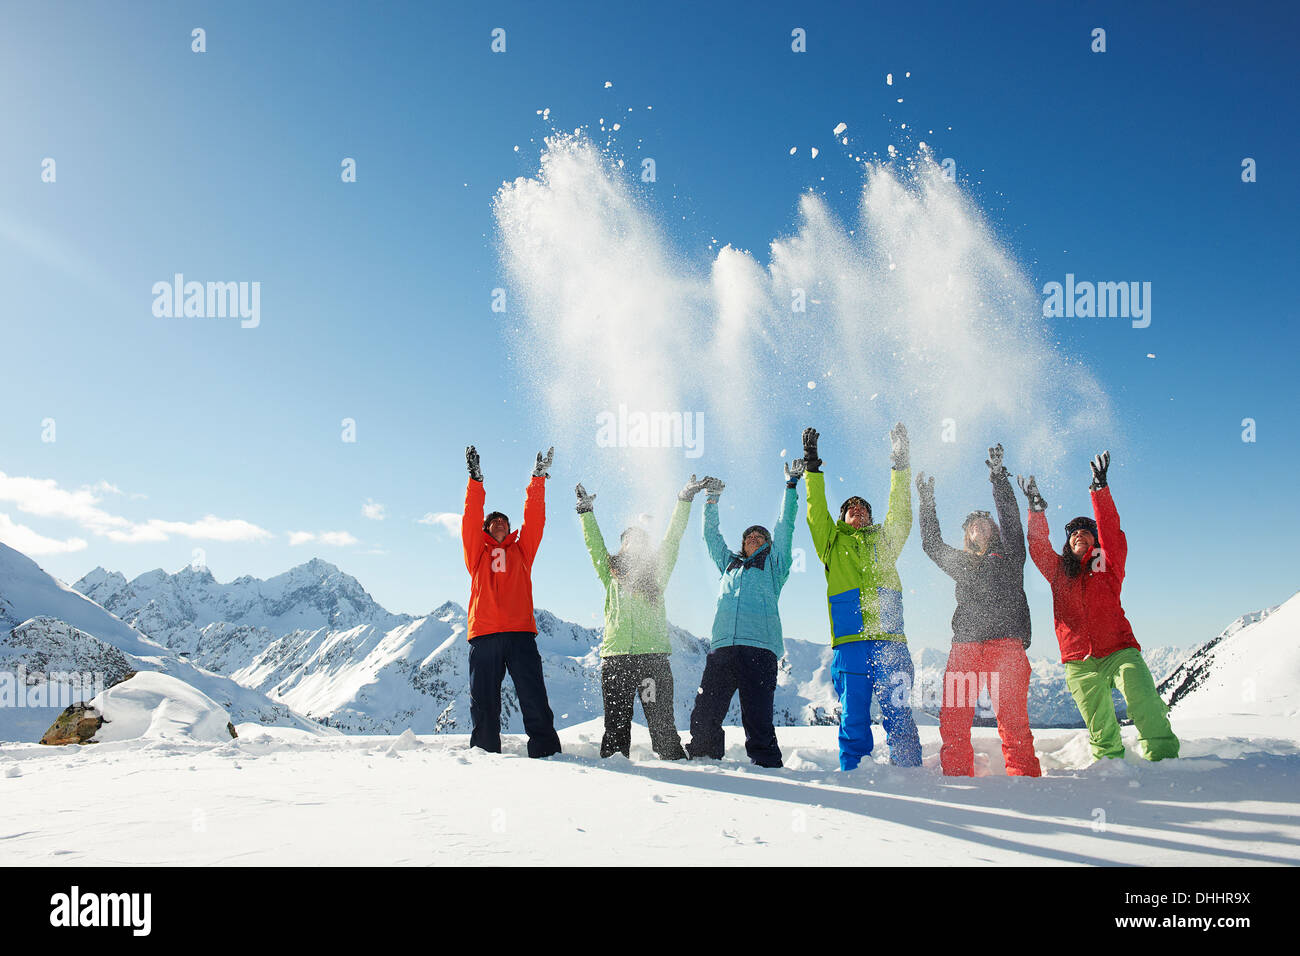 Les amis throwing snow mid-air, Kuhtai, Autriche Photo Stock